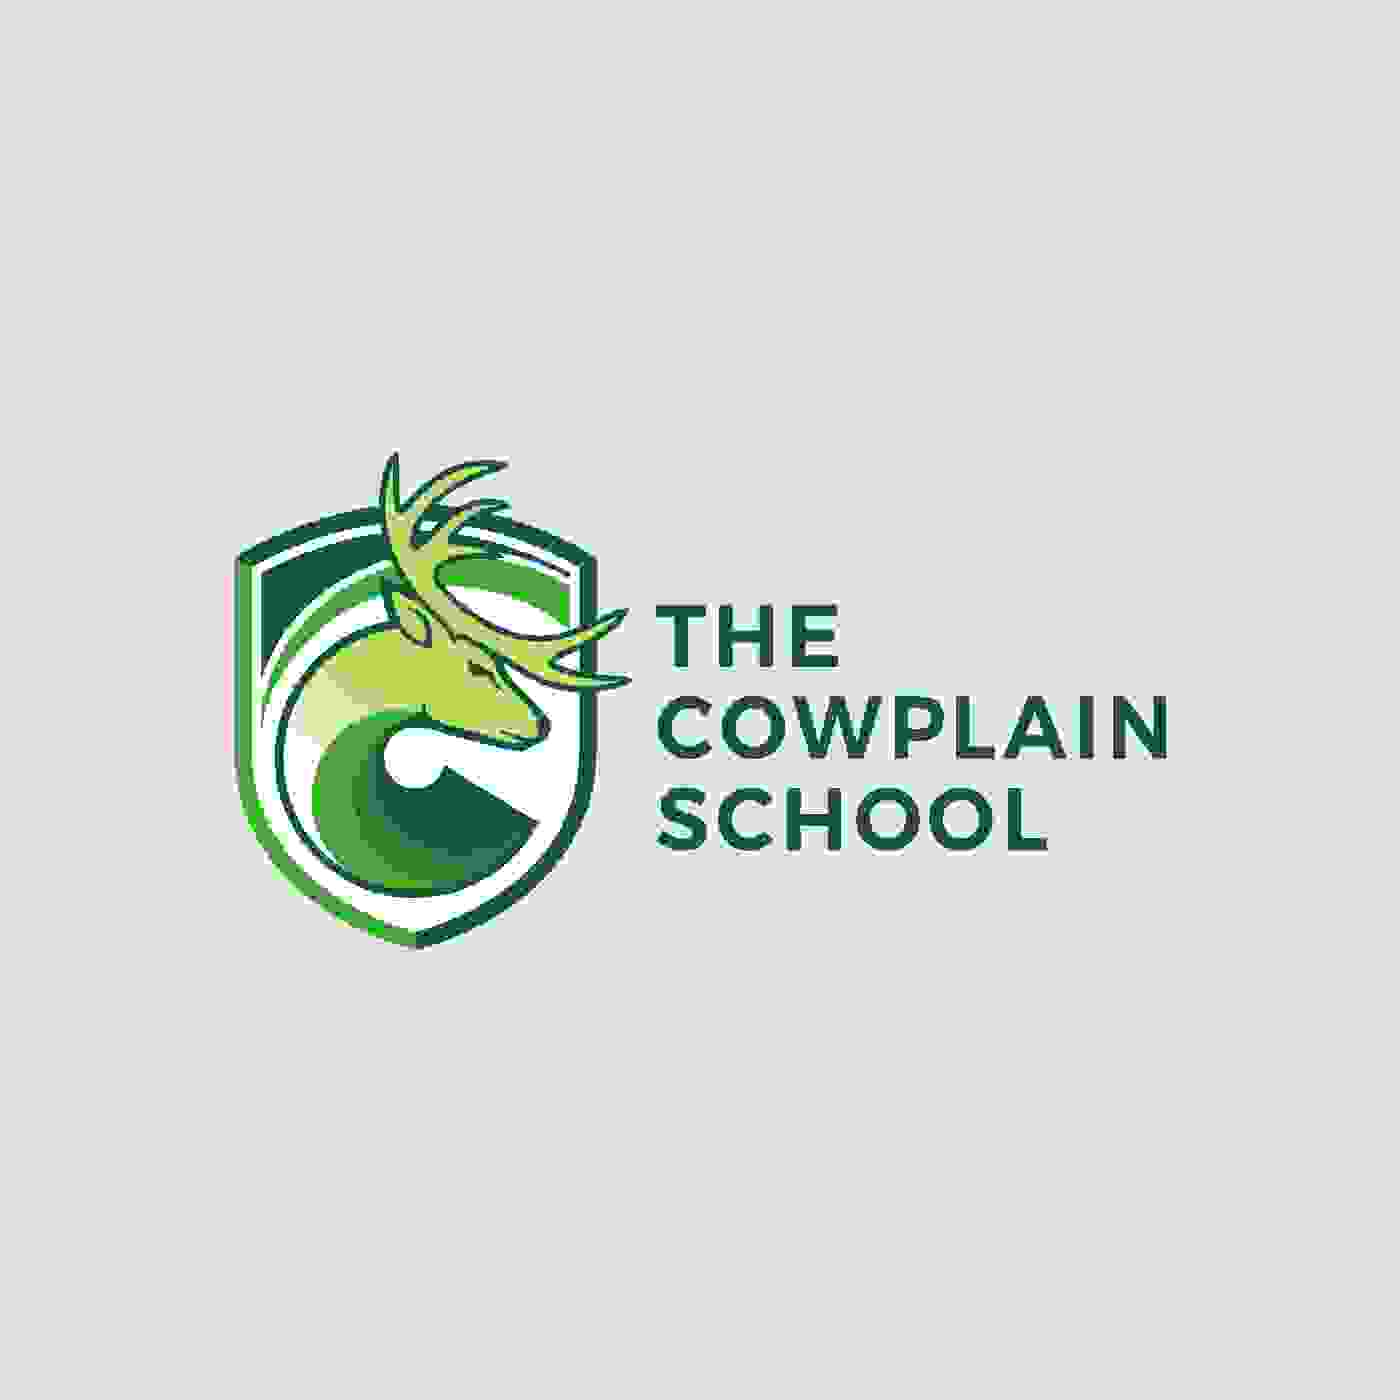 The Cowplain School